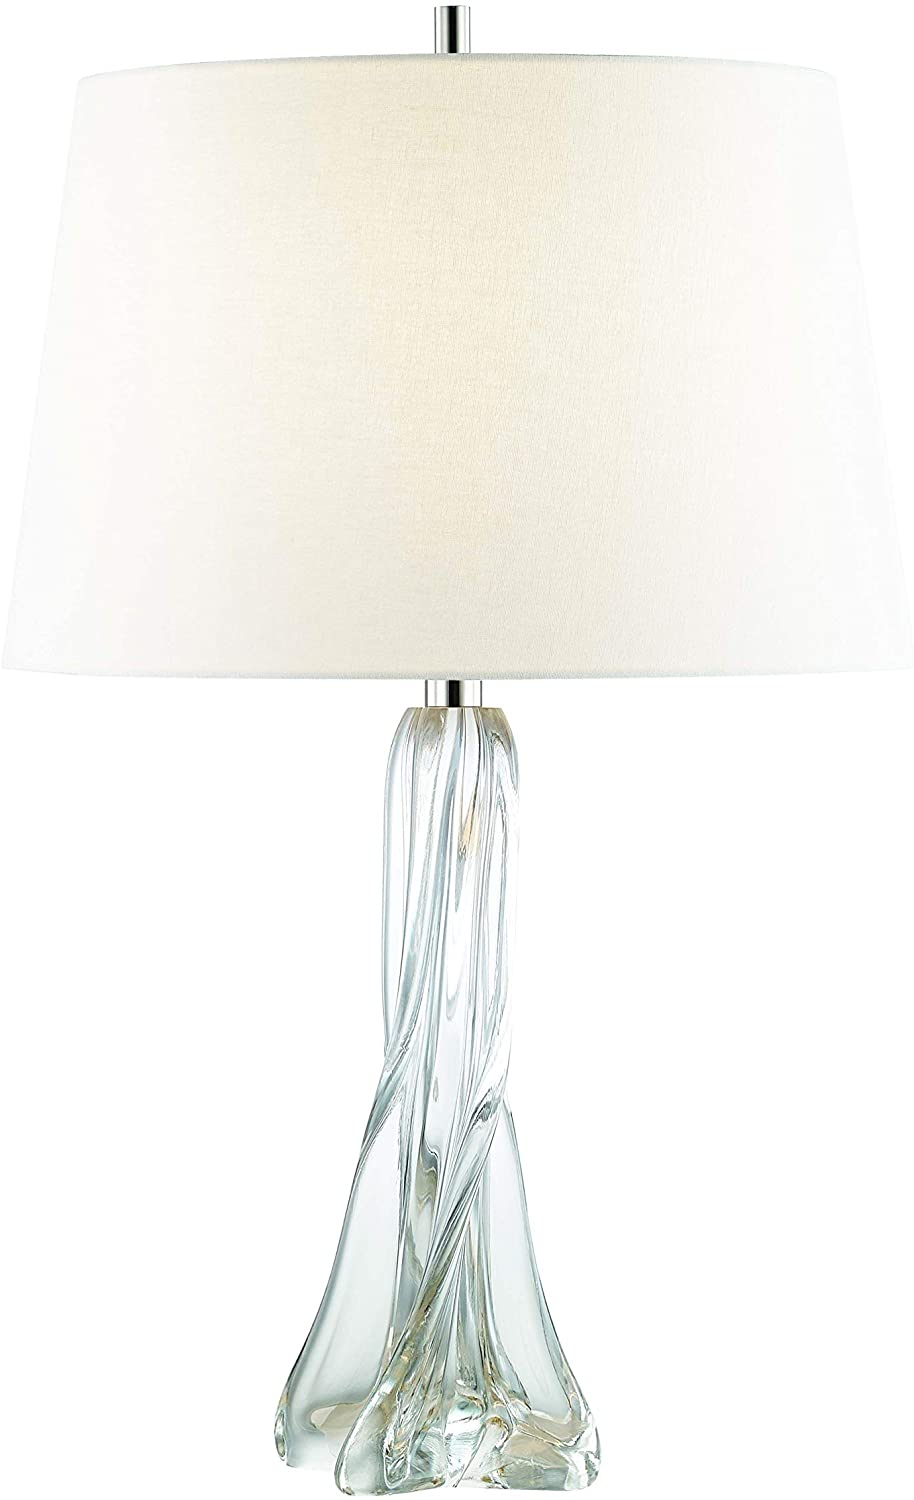 Hudson Valley Lighting L1029-PN 1 Light Table Lamp with Off White Belgium Linen Shade, Polished Nickel Finish